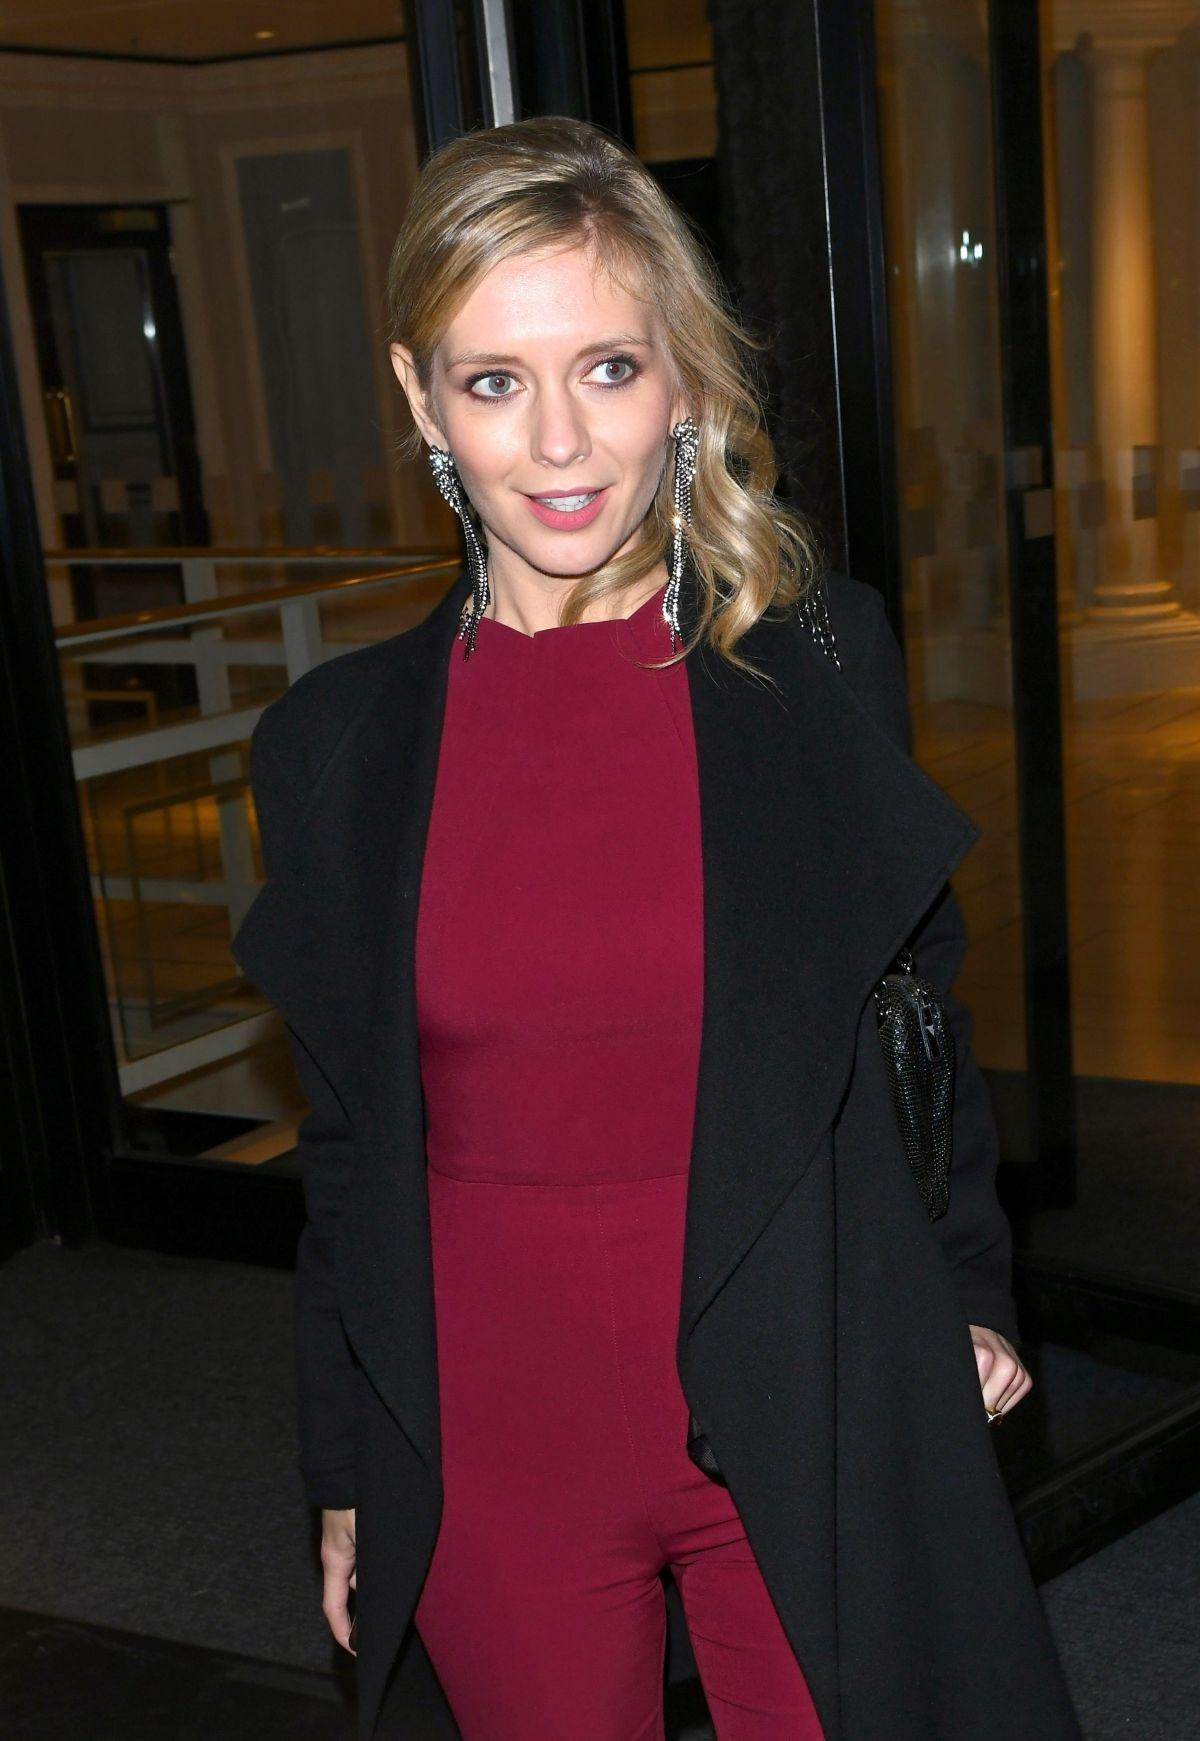 RACHEL RILEY at Legends of Football Award in London 10/08 ...